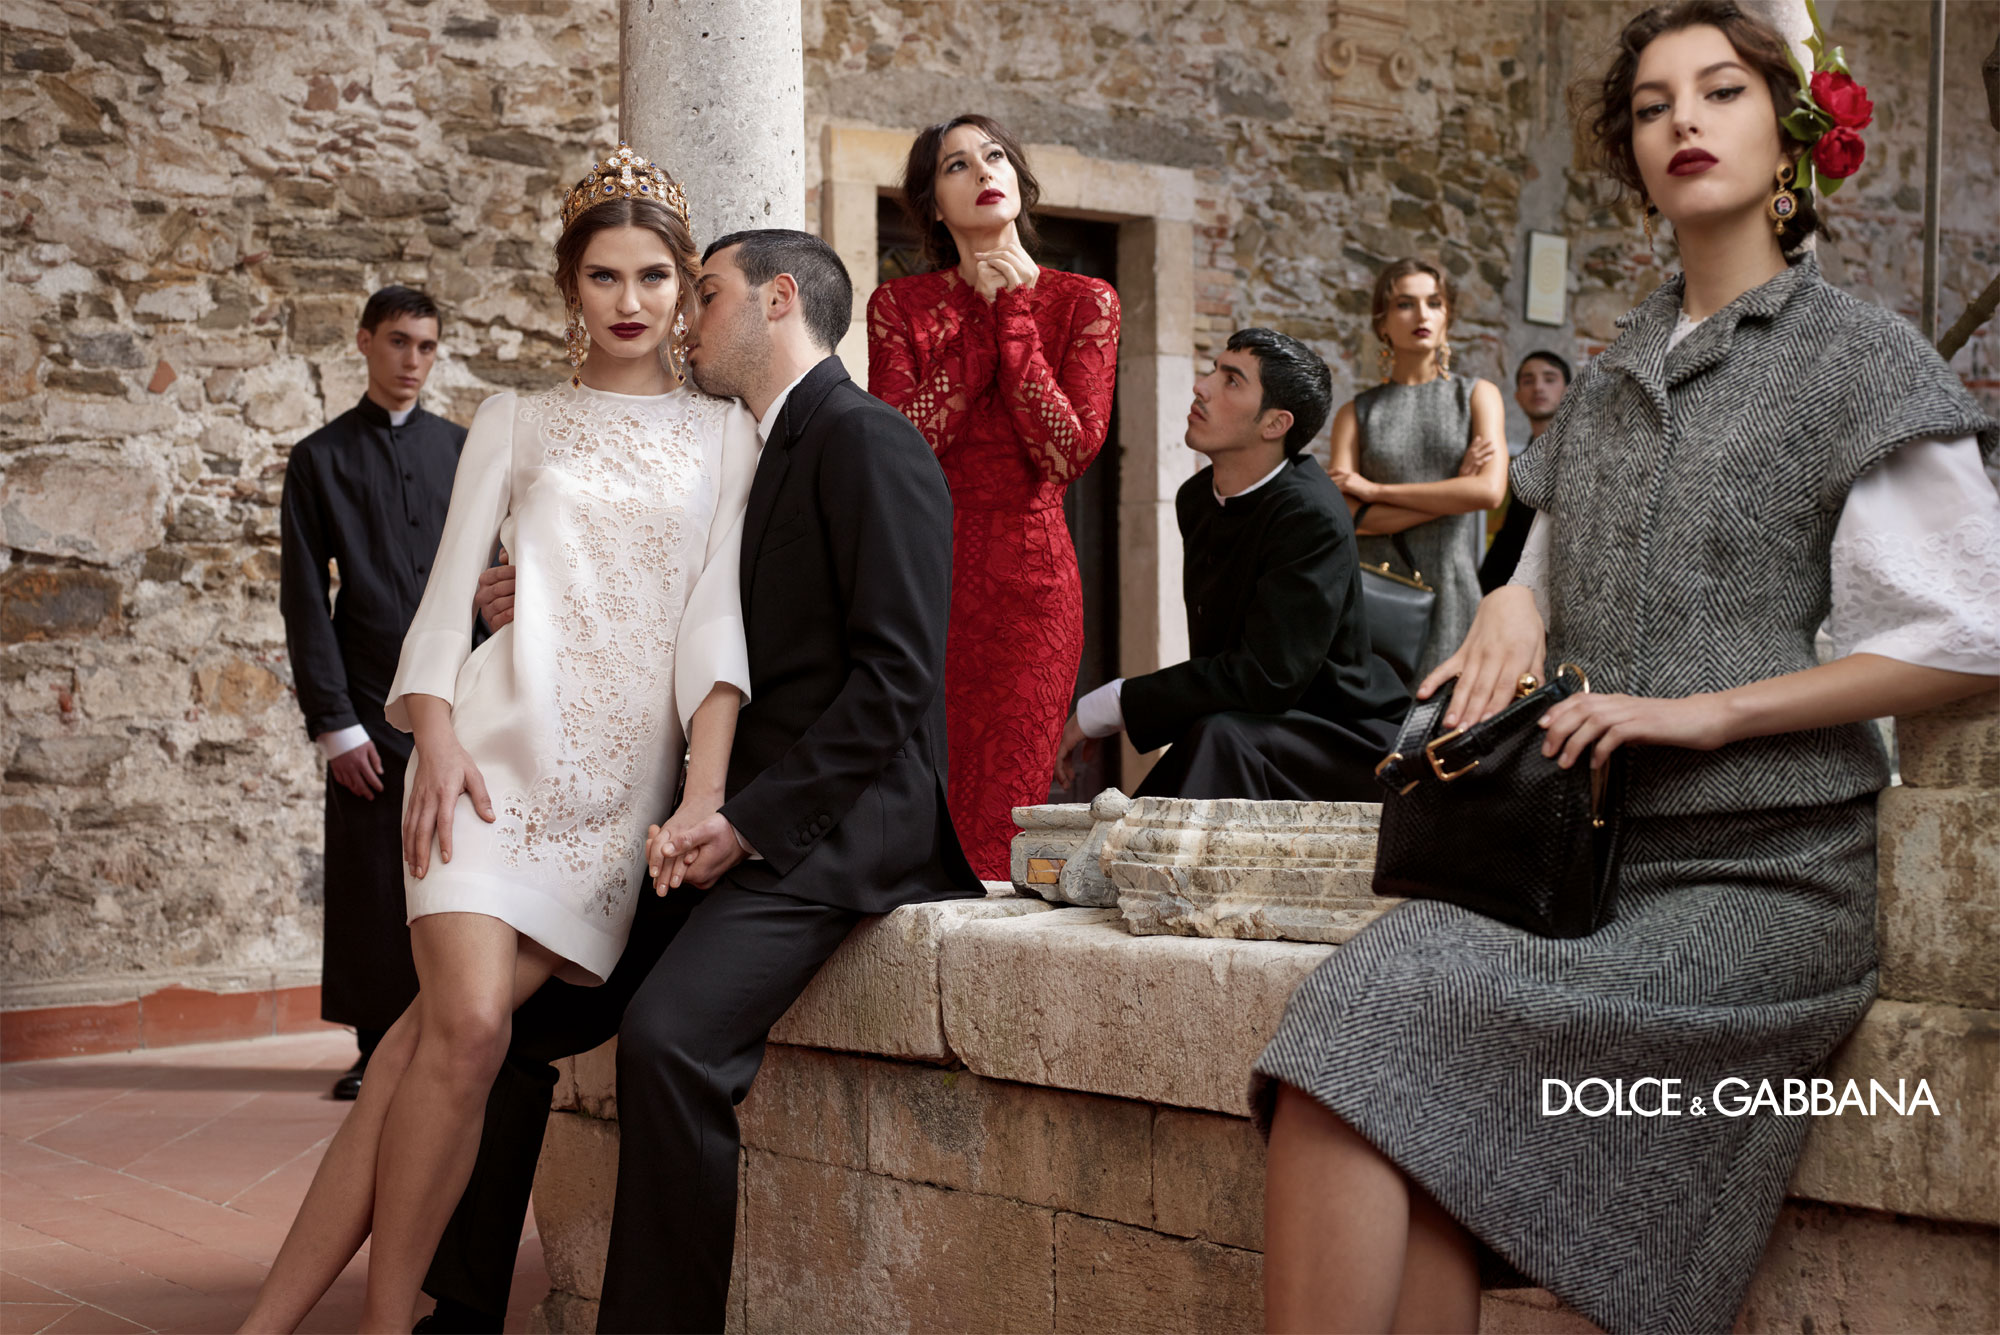 Dolce And Gabbana Fw 2014 Women Adv Campaign 2